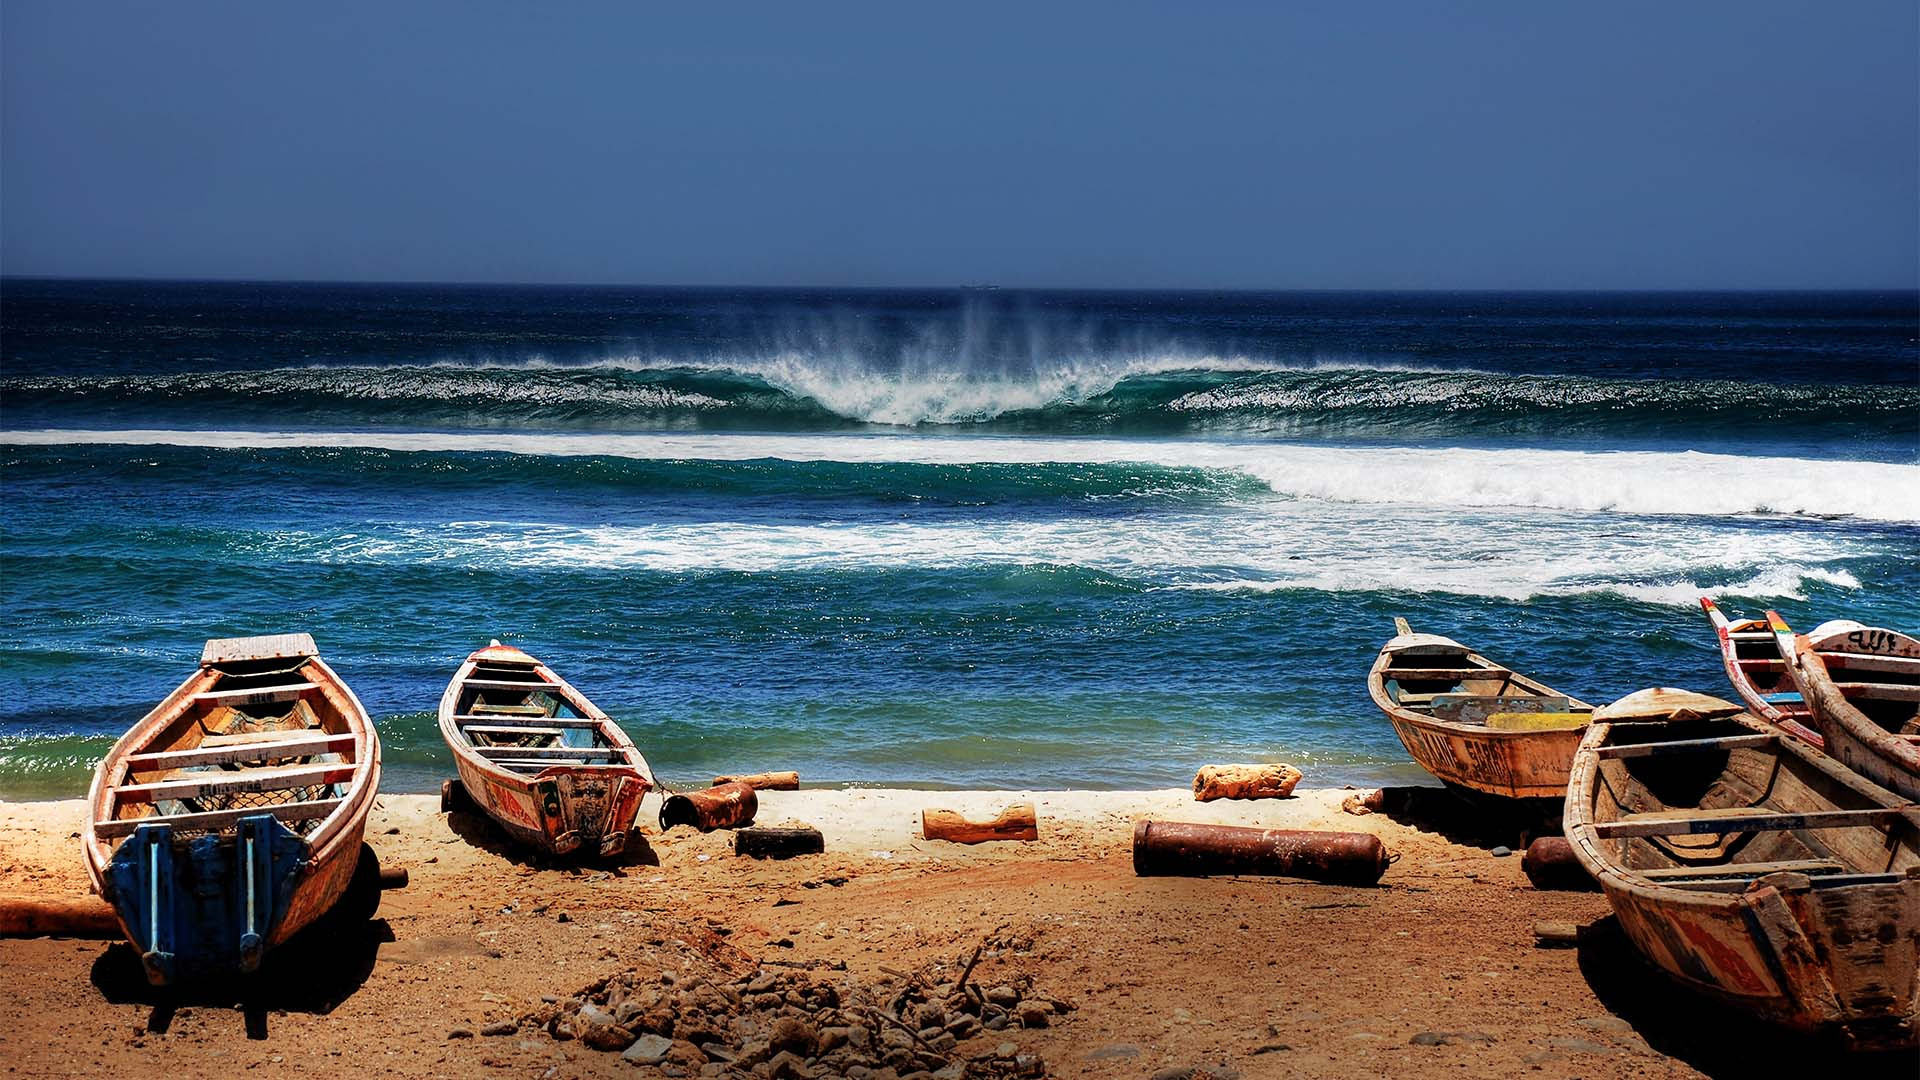 Boats on the Senegalese coast